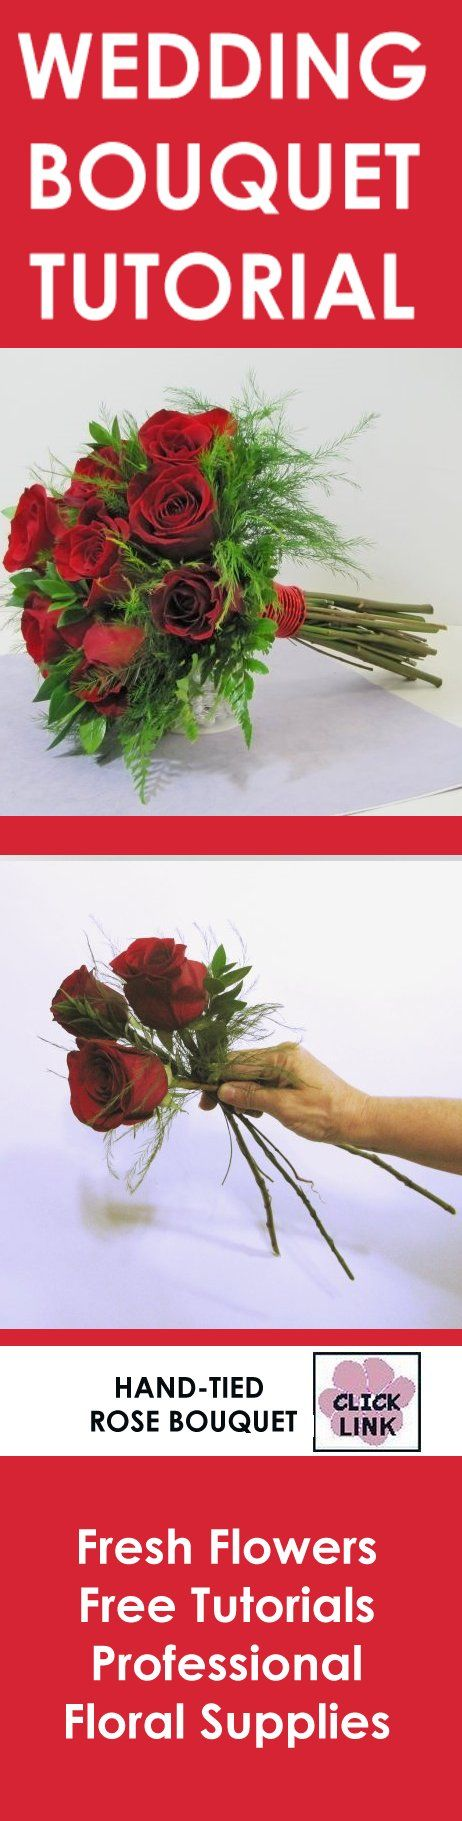 Pin by Wedding Flowers, Inc. on How to Make a Wedding Bouquet ...